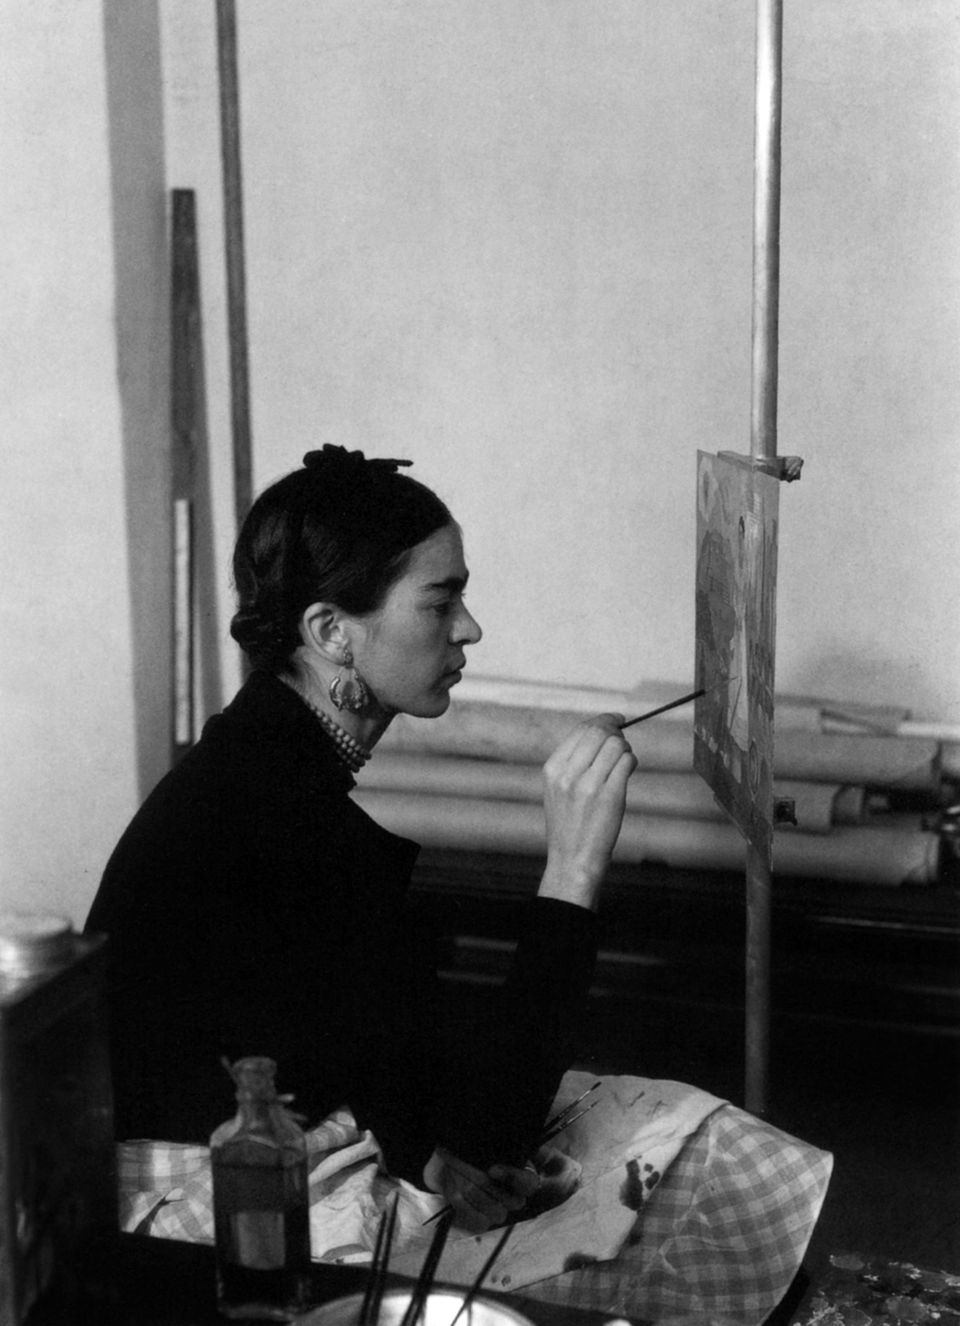 Frida Kahlo painting a self-portrait on the border line between Mexico and United States, for a Detroit Institute of Art mura